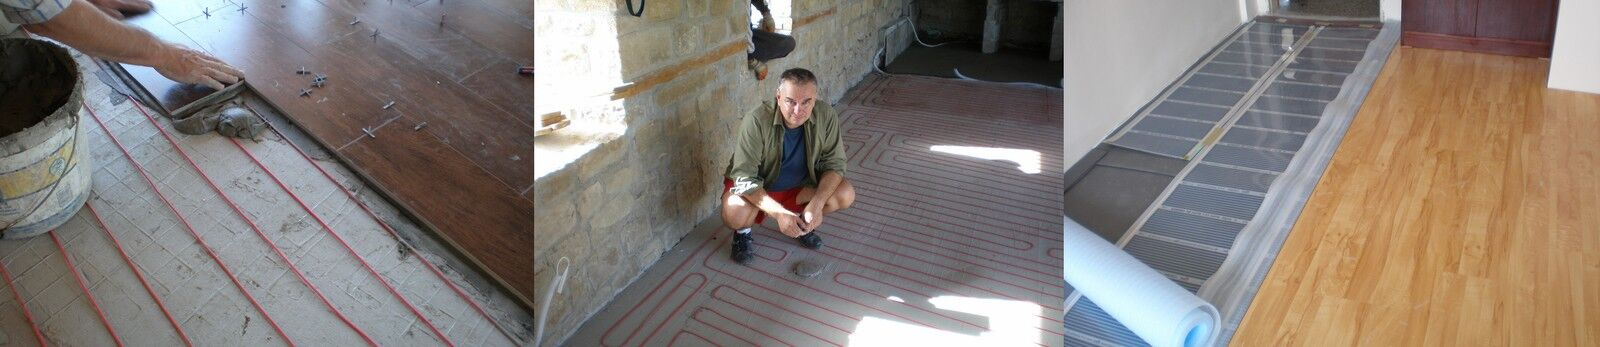 Vodoley Floor Heating System